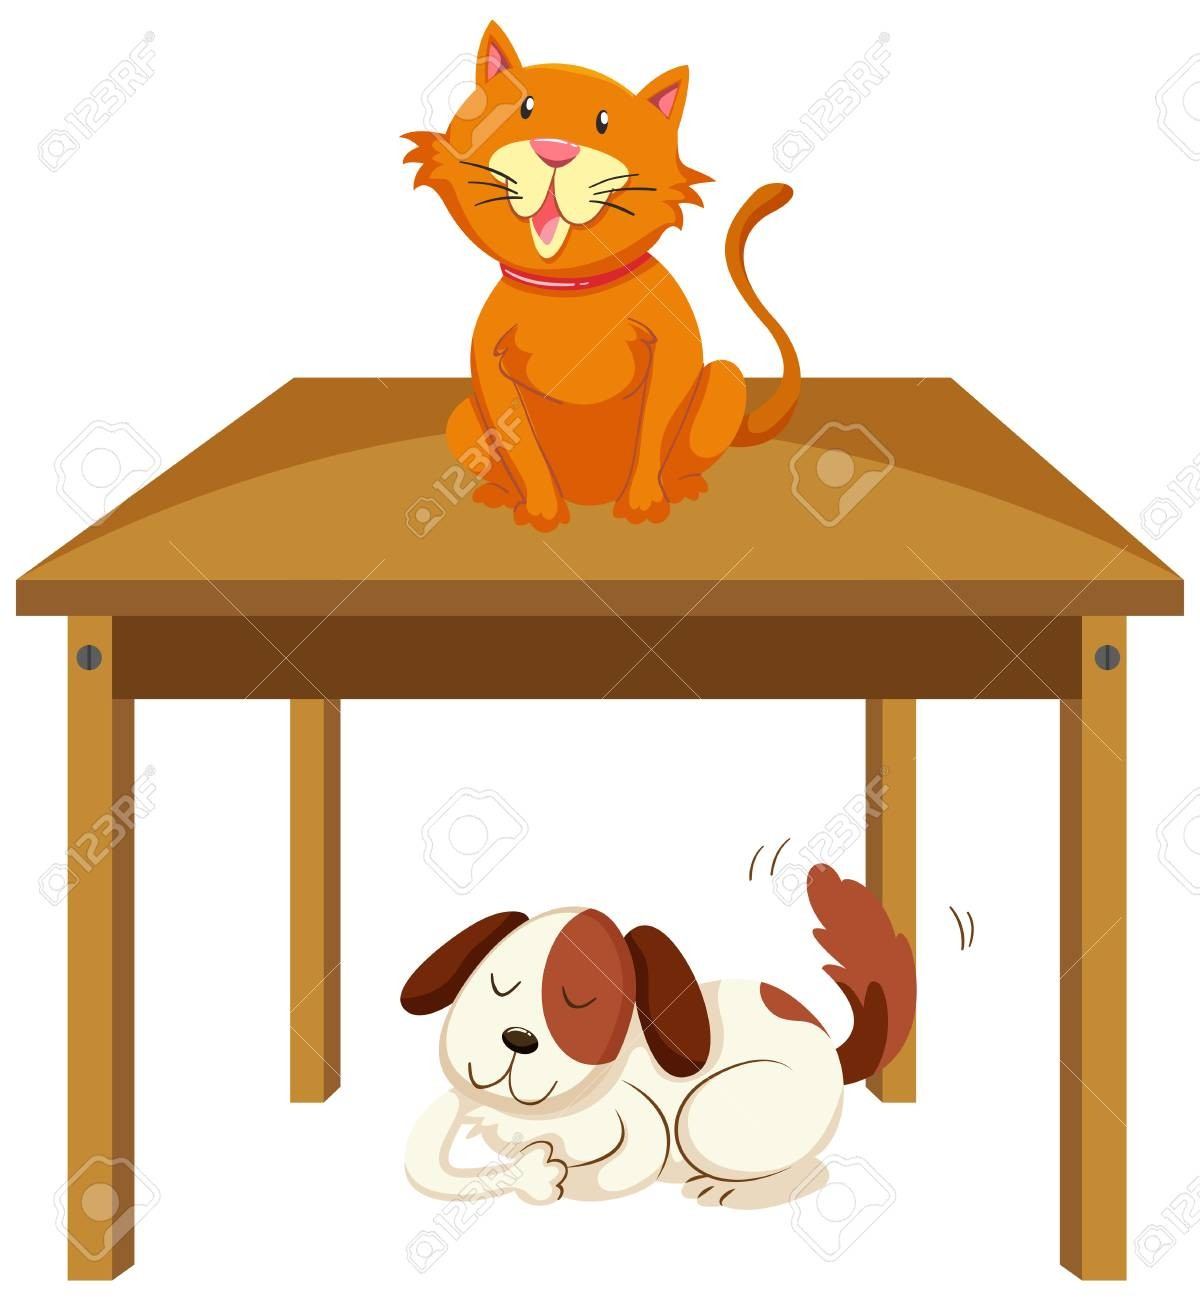 Dog and cat under the desk clipart svg freeuse library At Cat Under The Table Clipart 58766831 Dog Looks Black That Sits On ... svg freeuse library